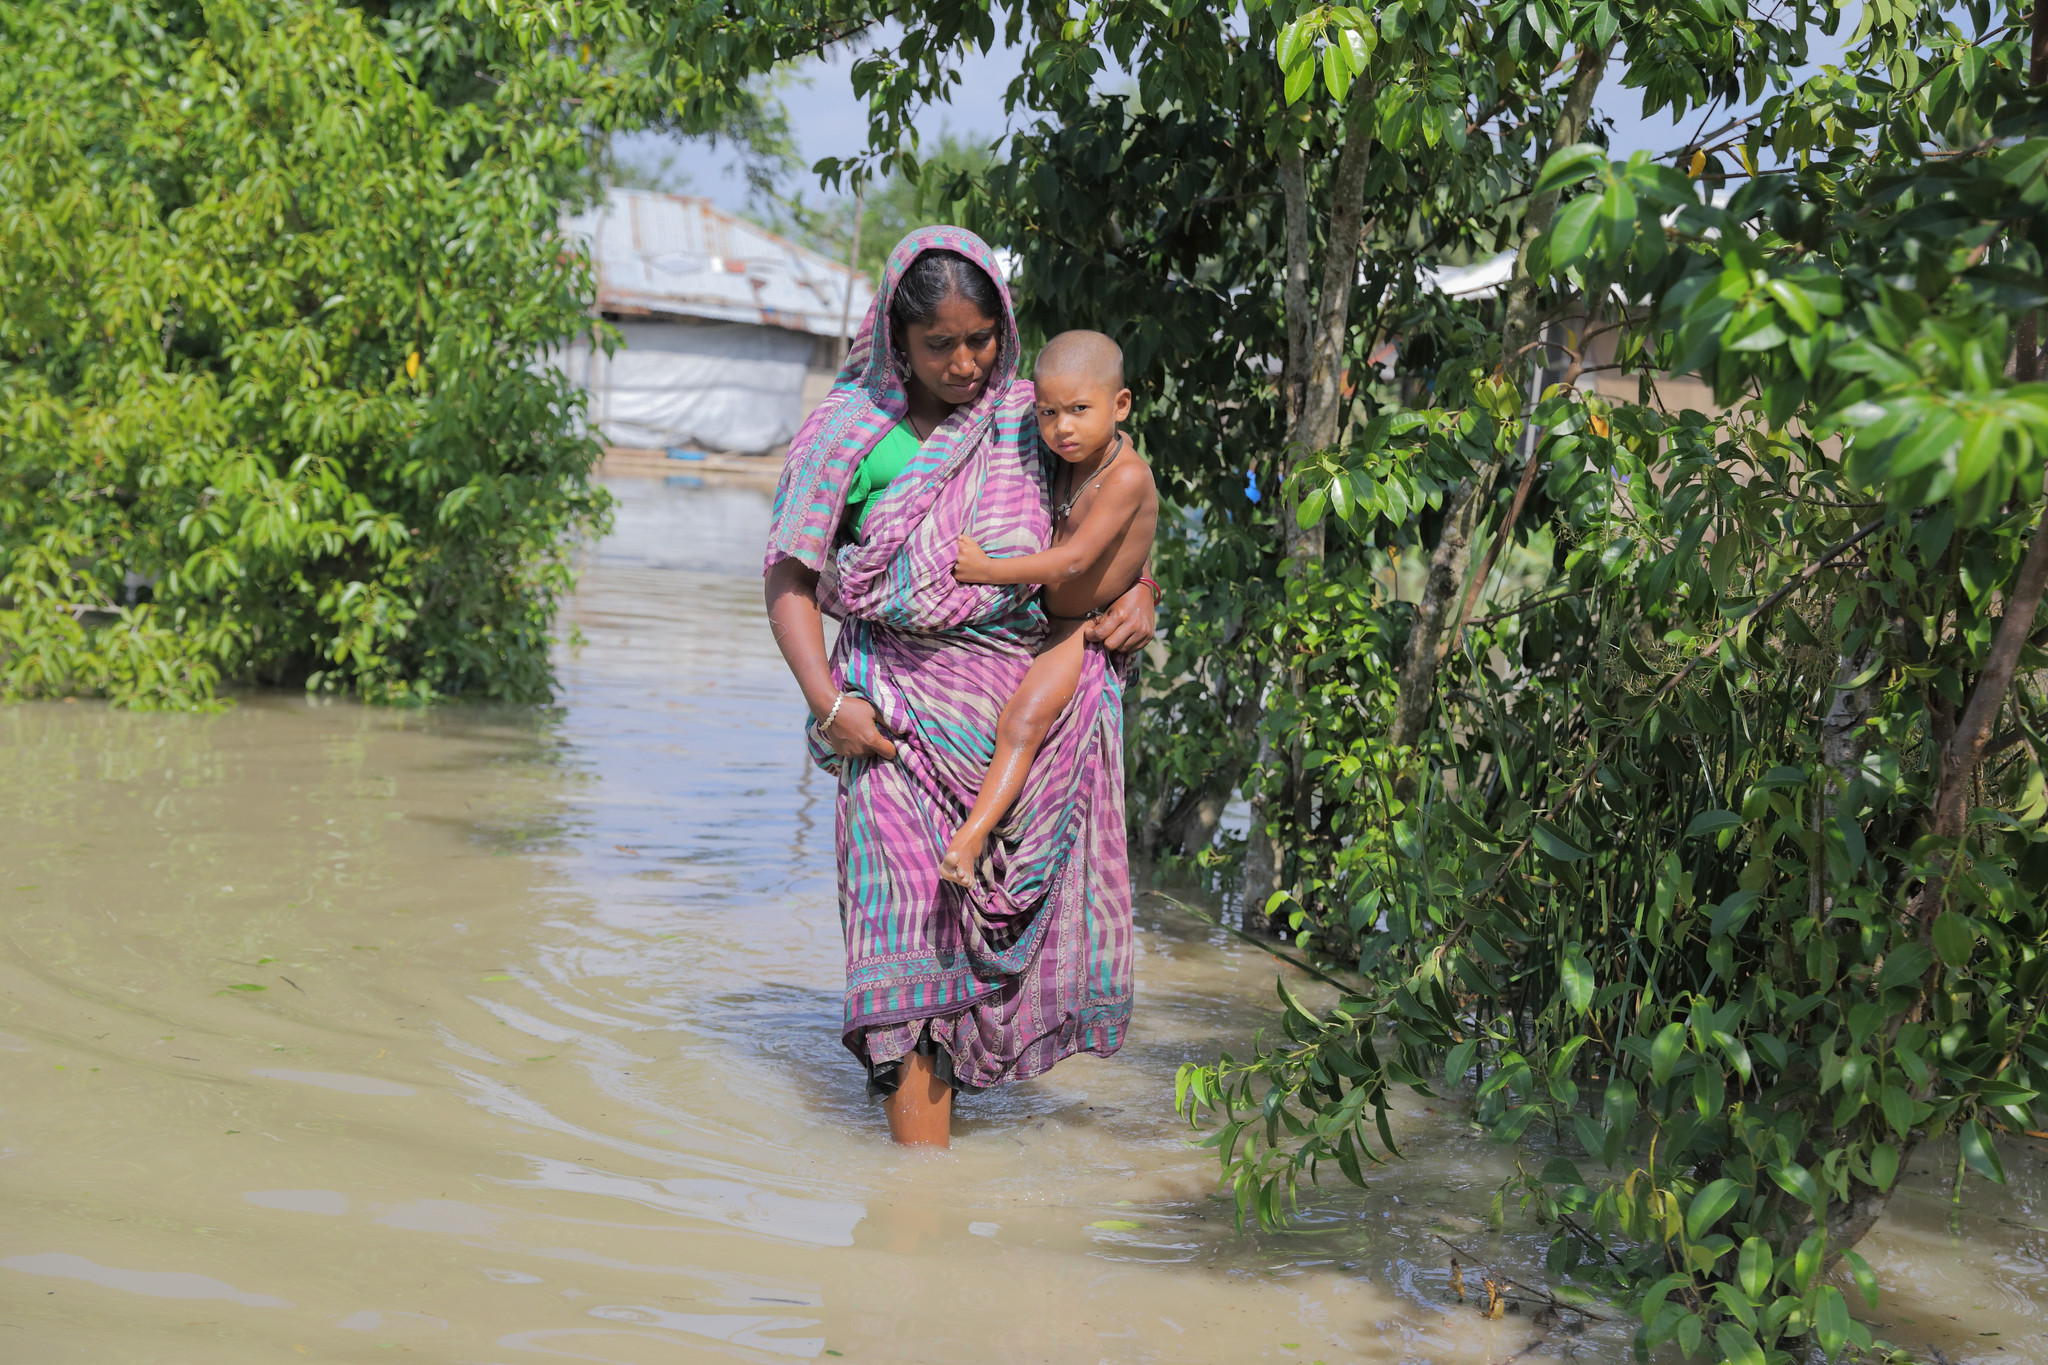 Photo of a woman crossing flood water and carrying a baby